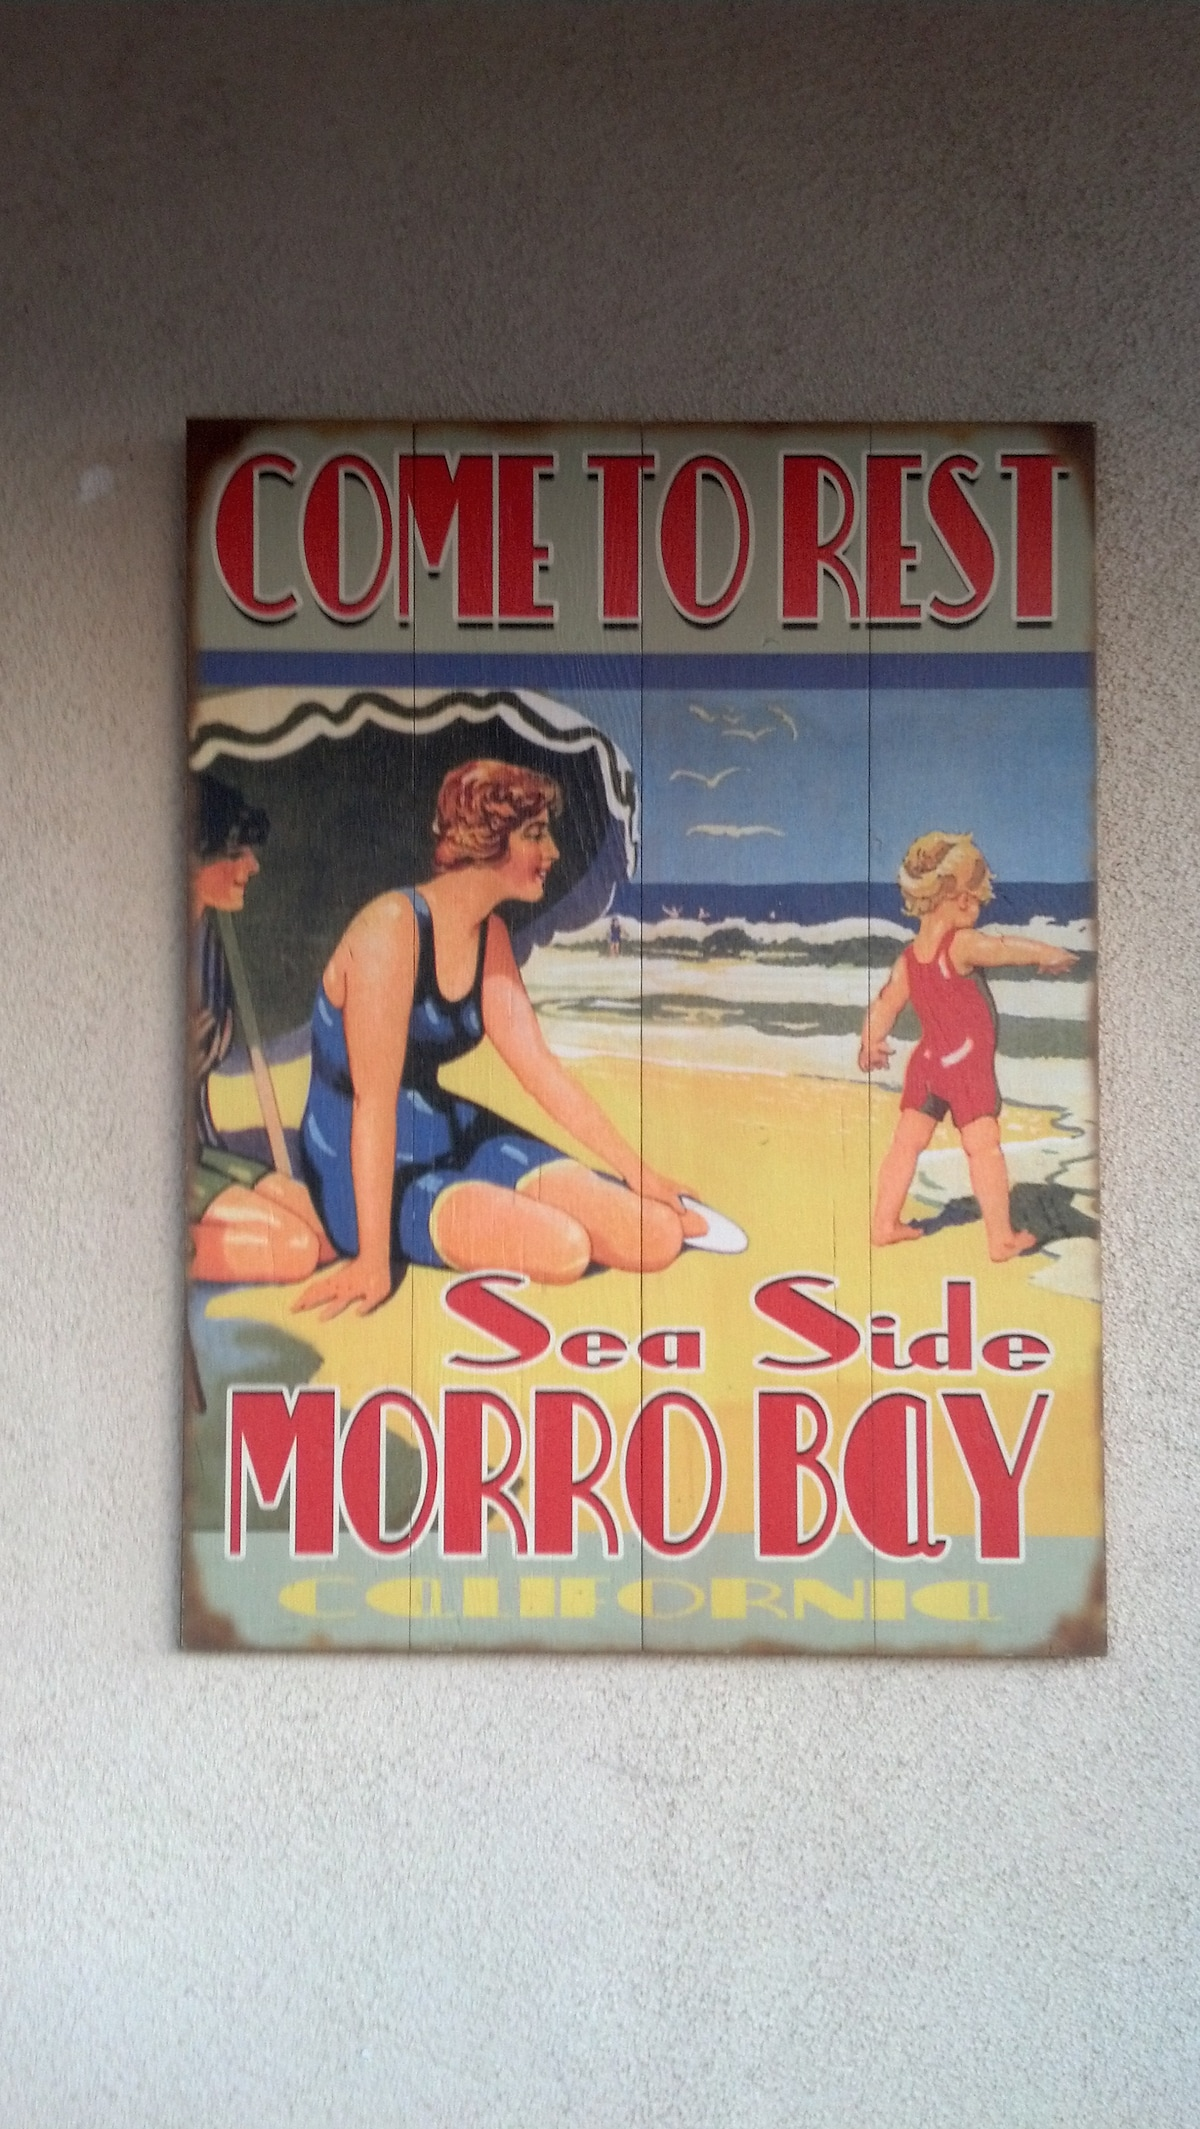 Morro Bay...a retreat from everyday life.